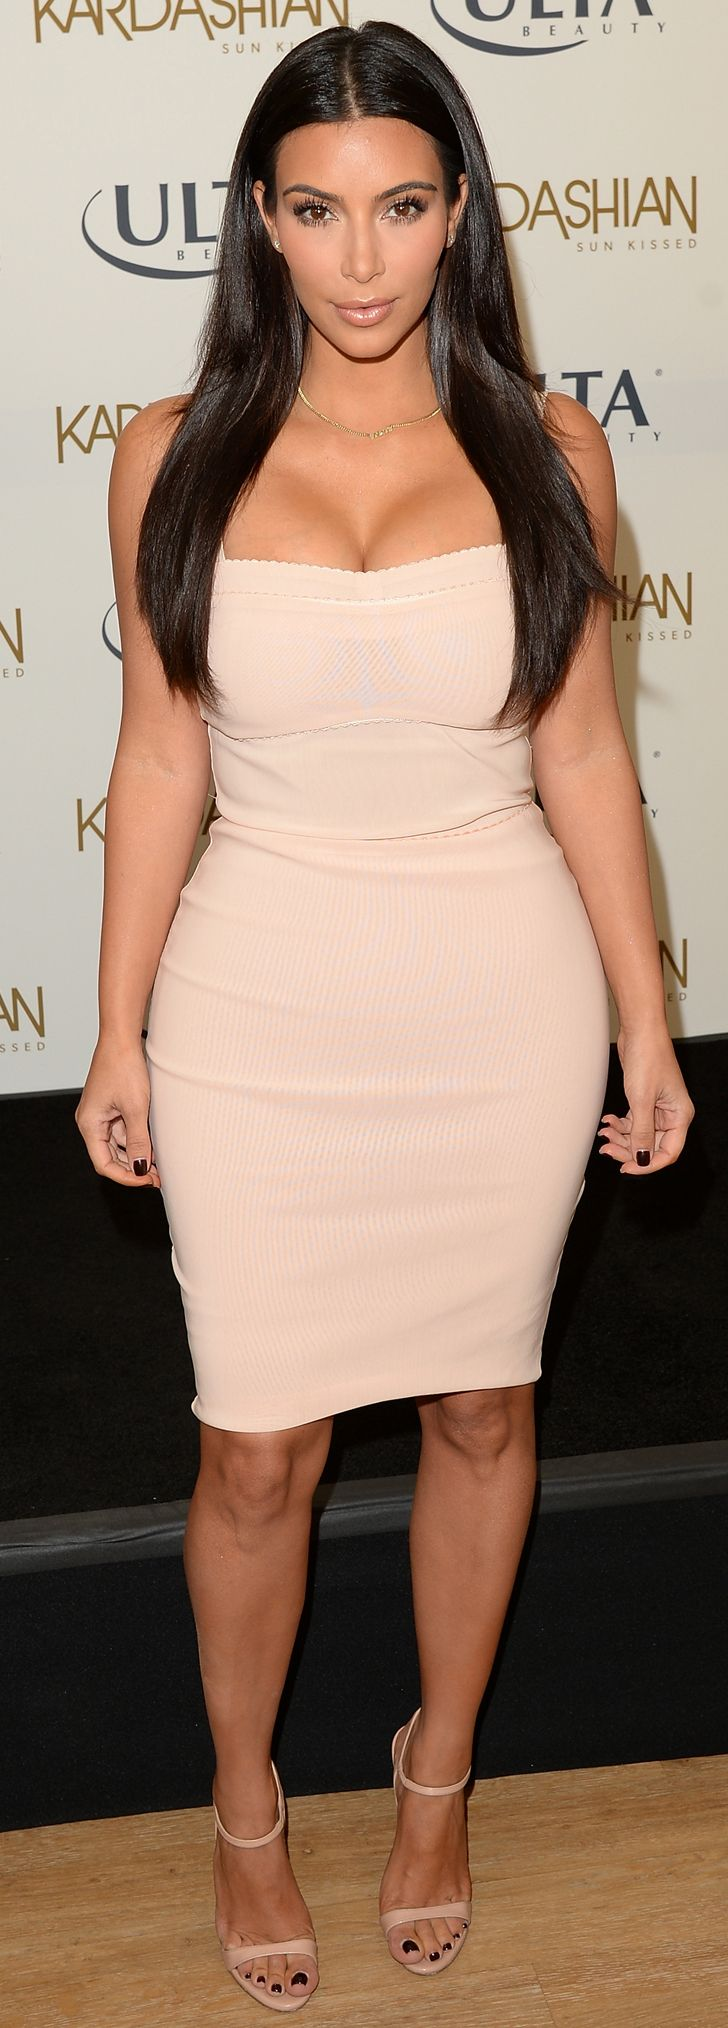 Kim Kardashian in Bec & Bridge at the Kardashian Sun Kissed Ulta Beauty event.